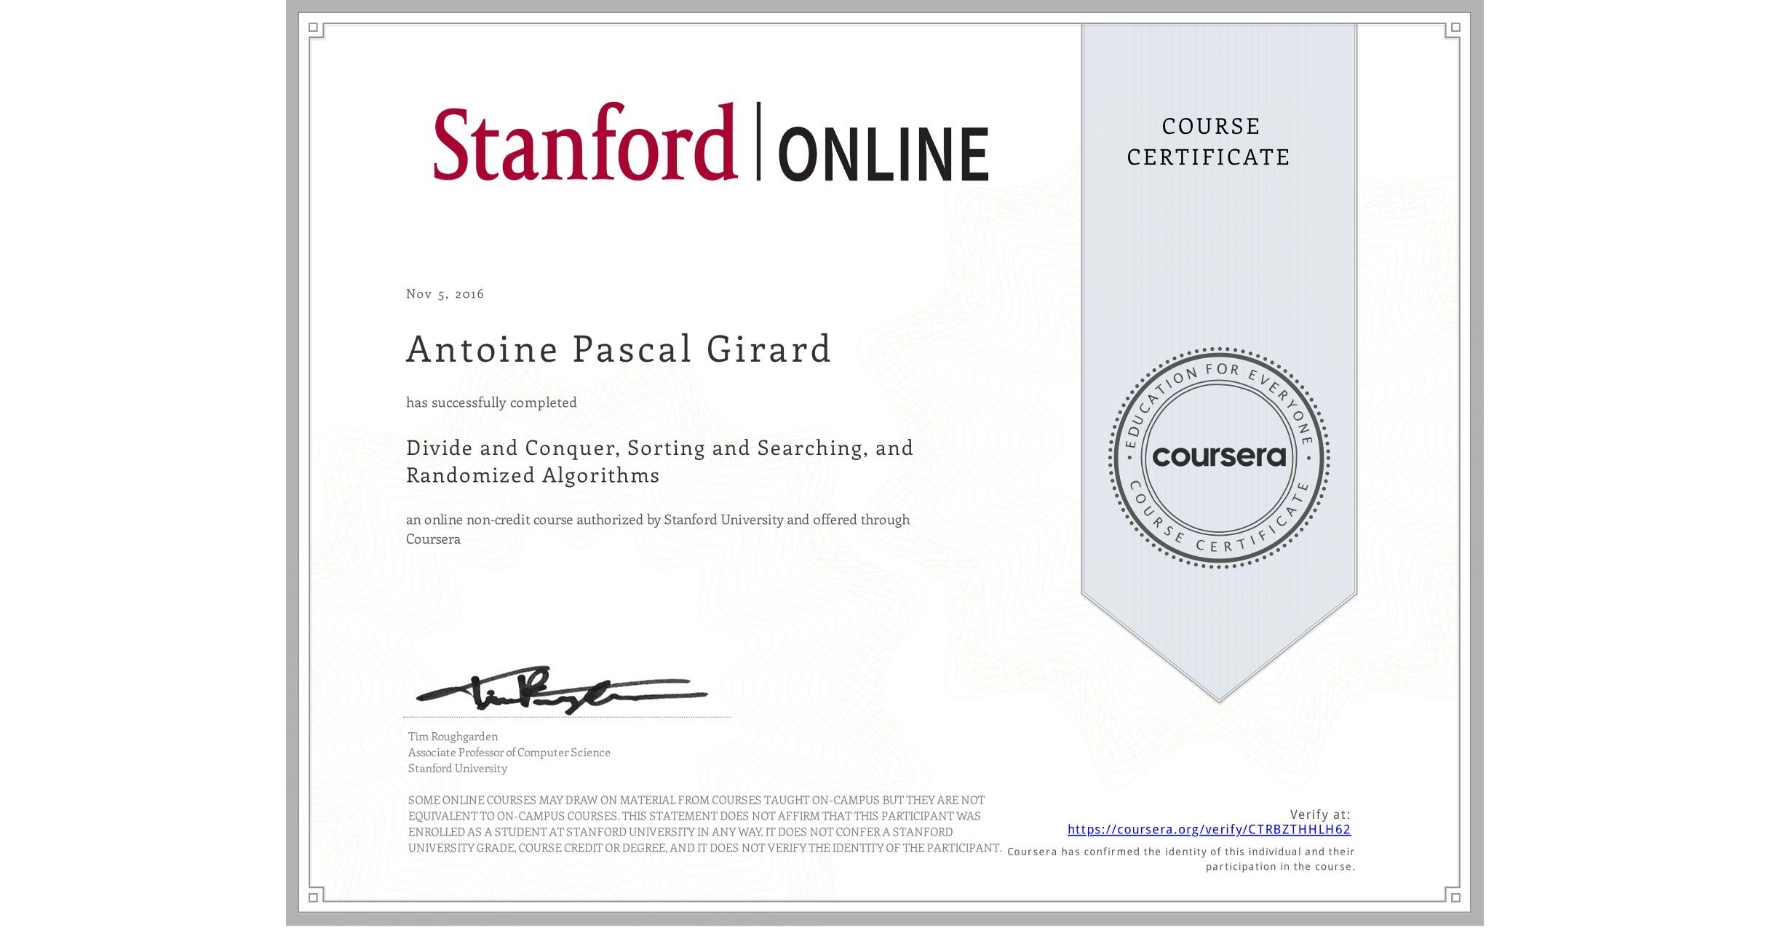 View certificate for Antoine Pascal Girard, Divide and Conquer, Sorting and Searching, and Randomized Algorithms, an online non-credit course authorized by Stanford University and offered through Coursera